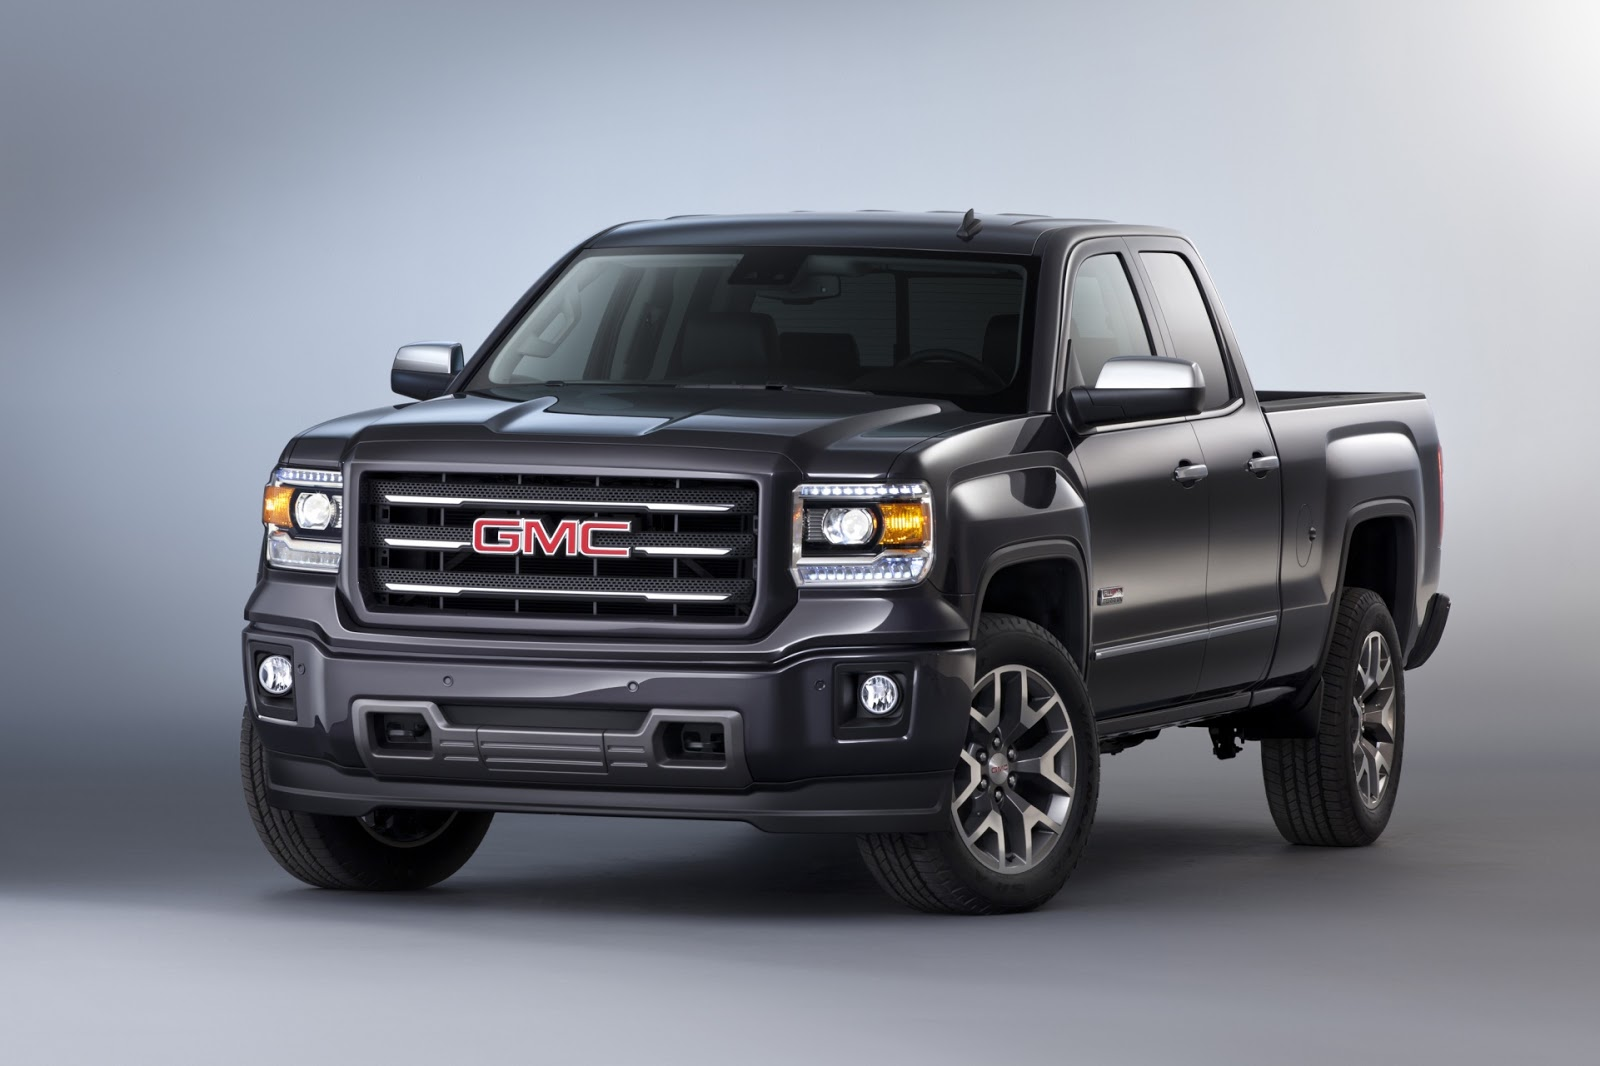 allnewcars 2013 new gmc sierra all terrain extended cab. Black Bedroom Furniture Sets. Home Design Ideas